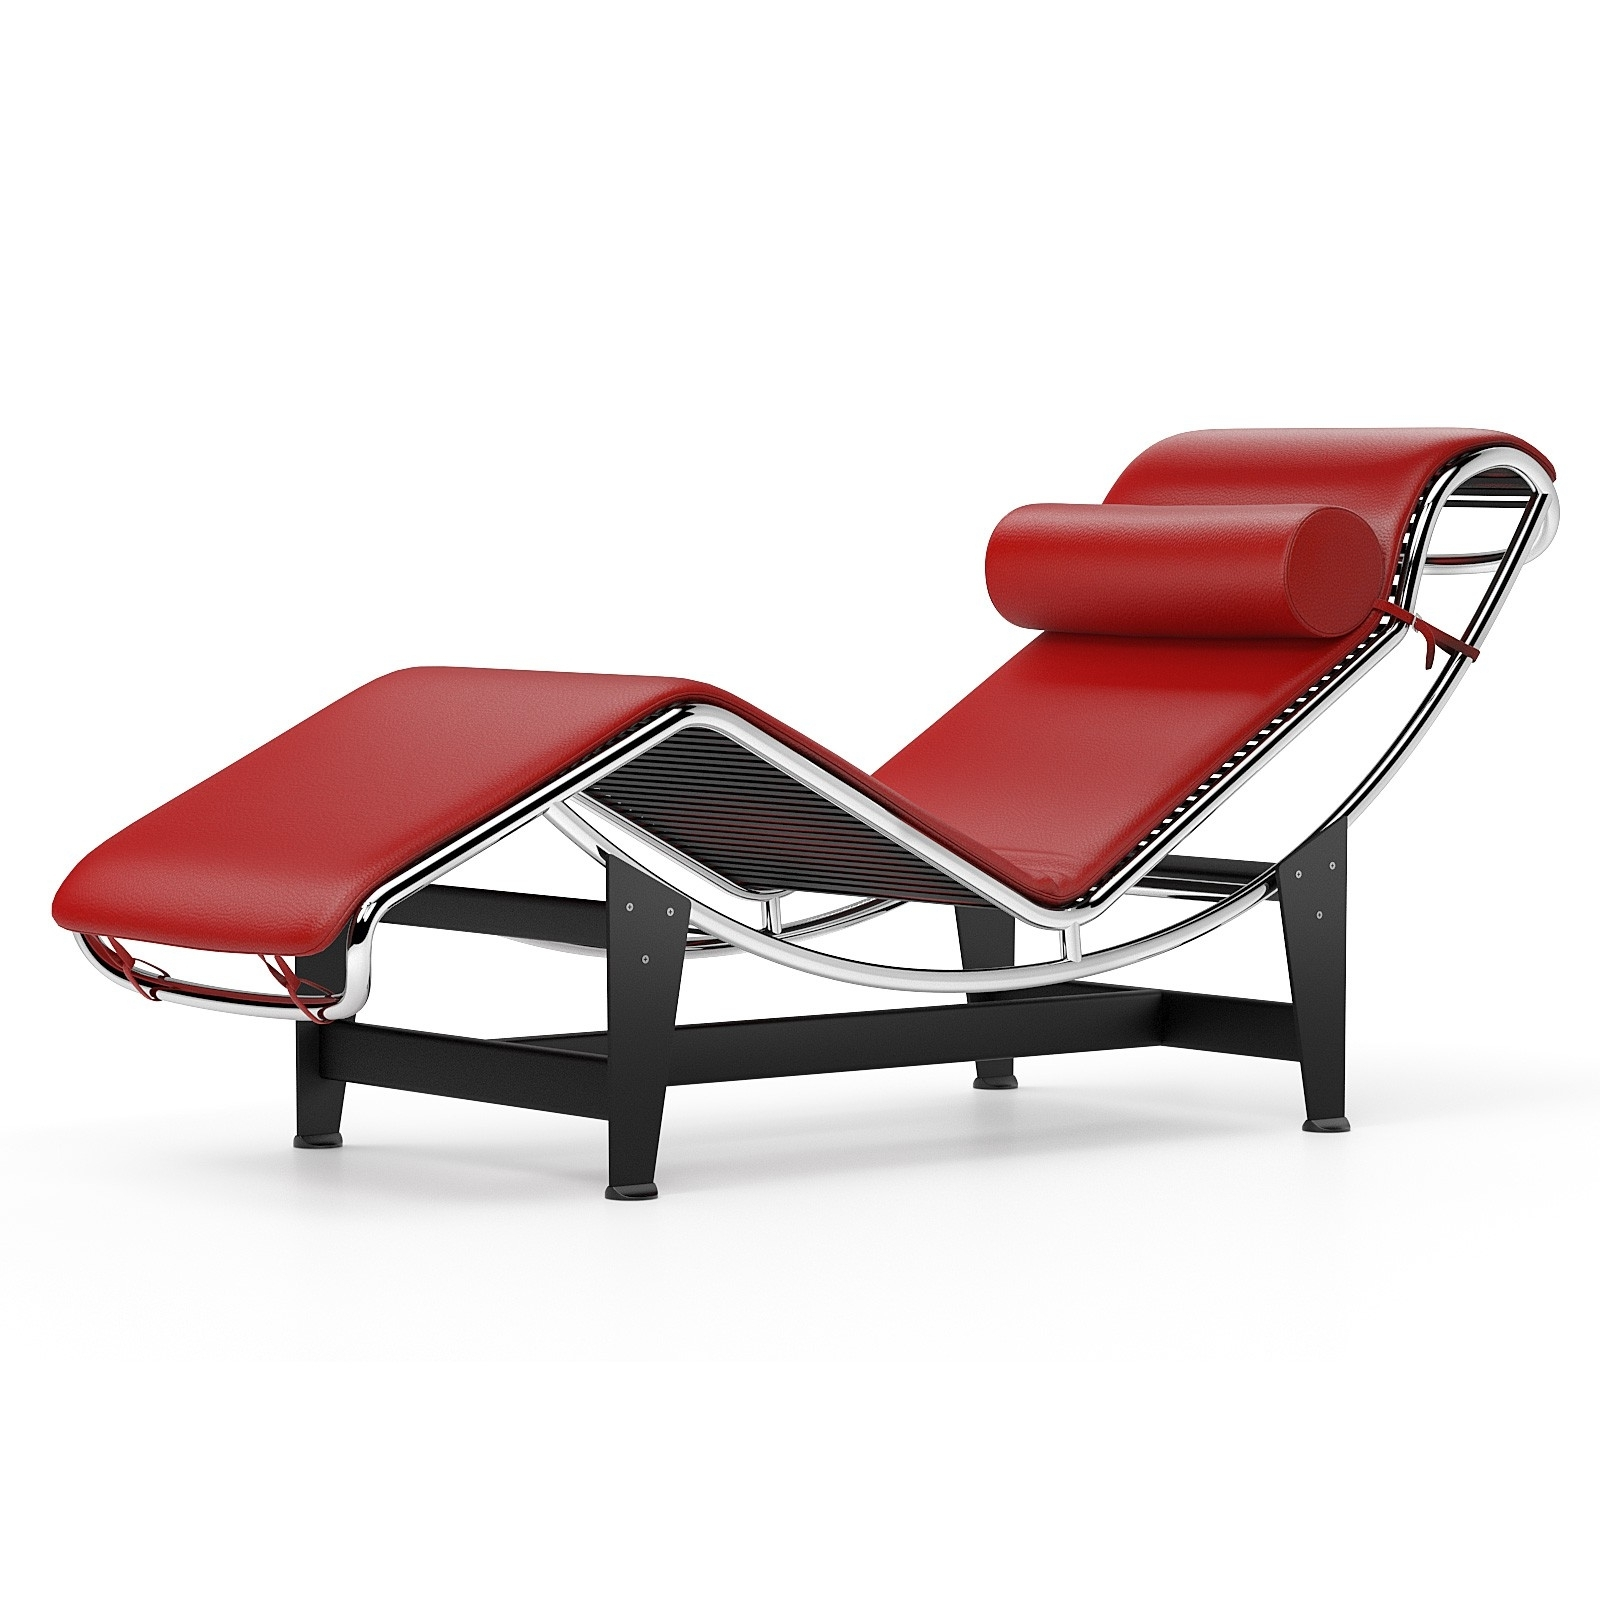 Chaise Longue Le Corbusier Lc4 Chaise Longue Red Throughout Most Up To Date Corbusier Chaises (View 5 of 15)